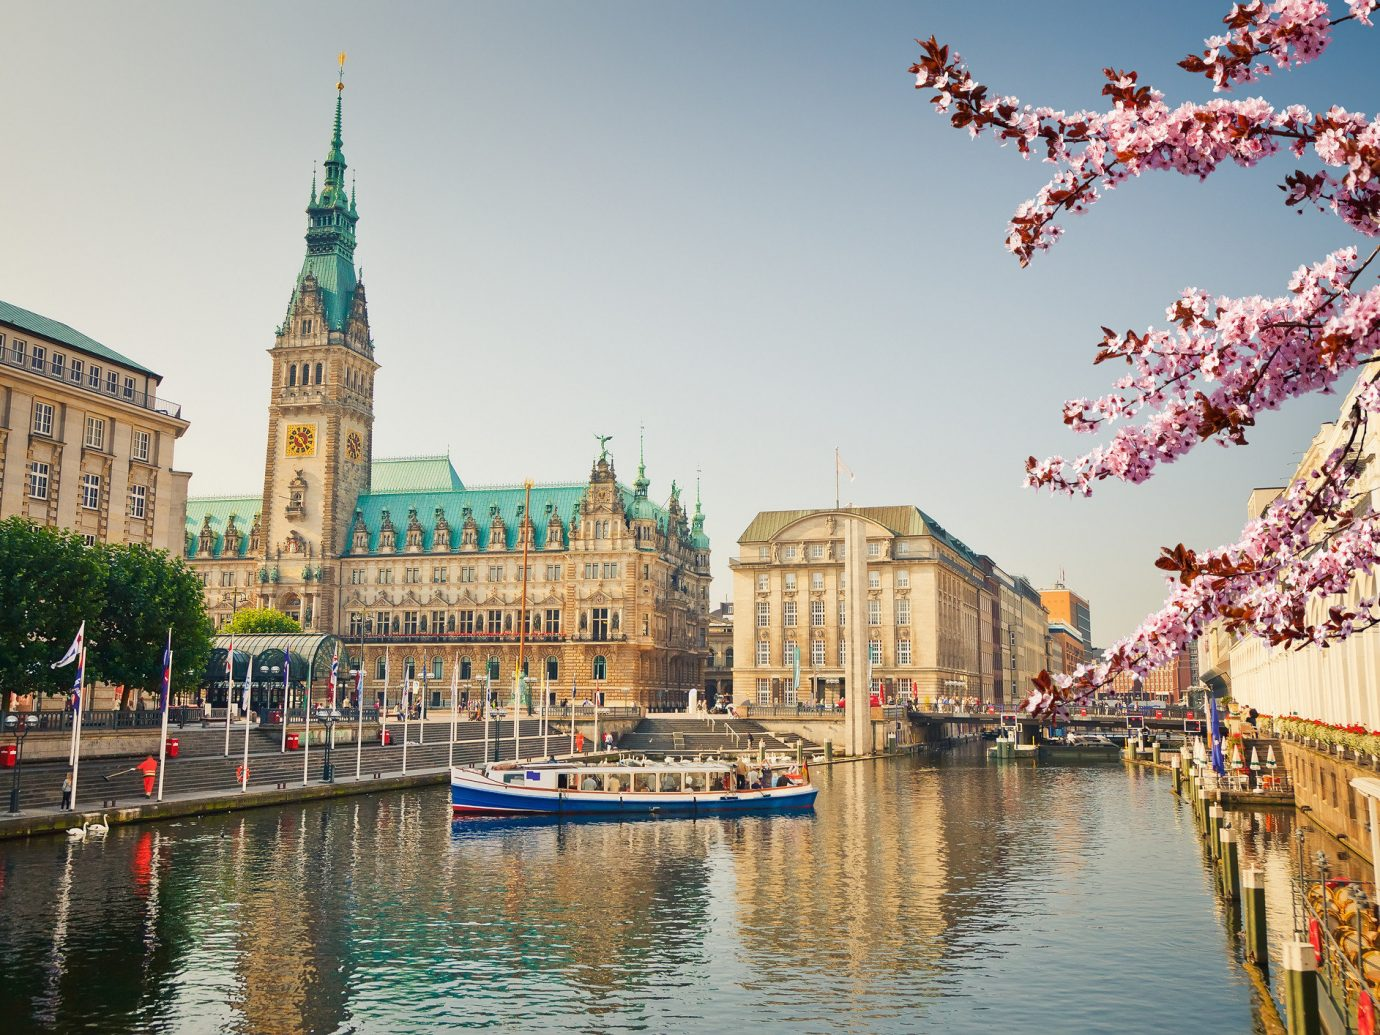 Hotels Lakes + Rivers Landmarks Trip Ideas water outdoor Boat scene landmark City cityscape River waterway Canal tourism flower Harbor